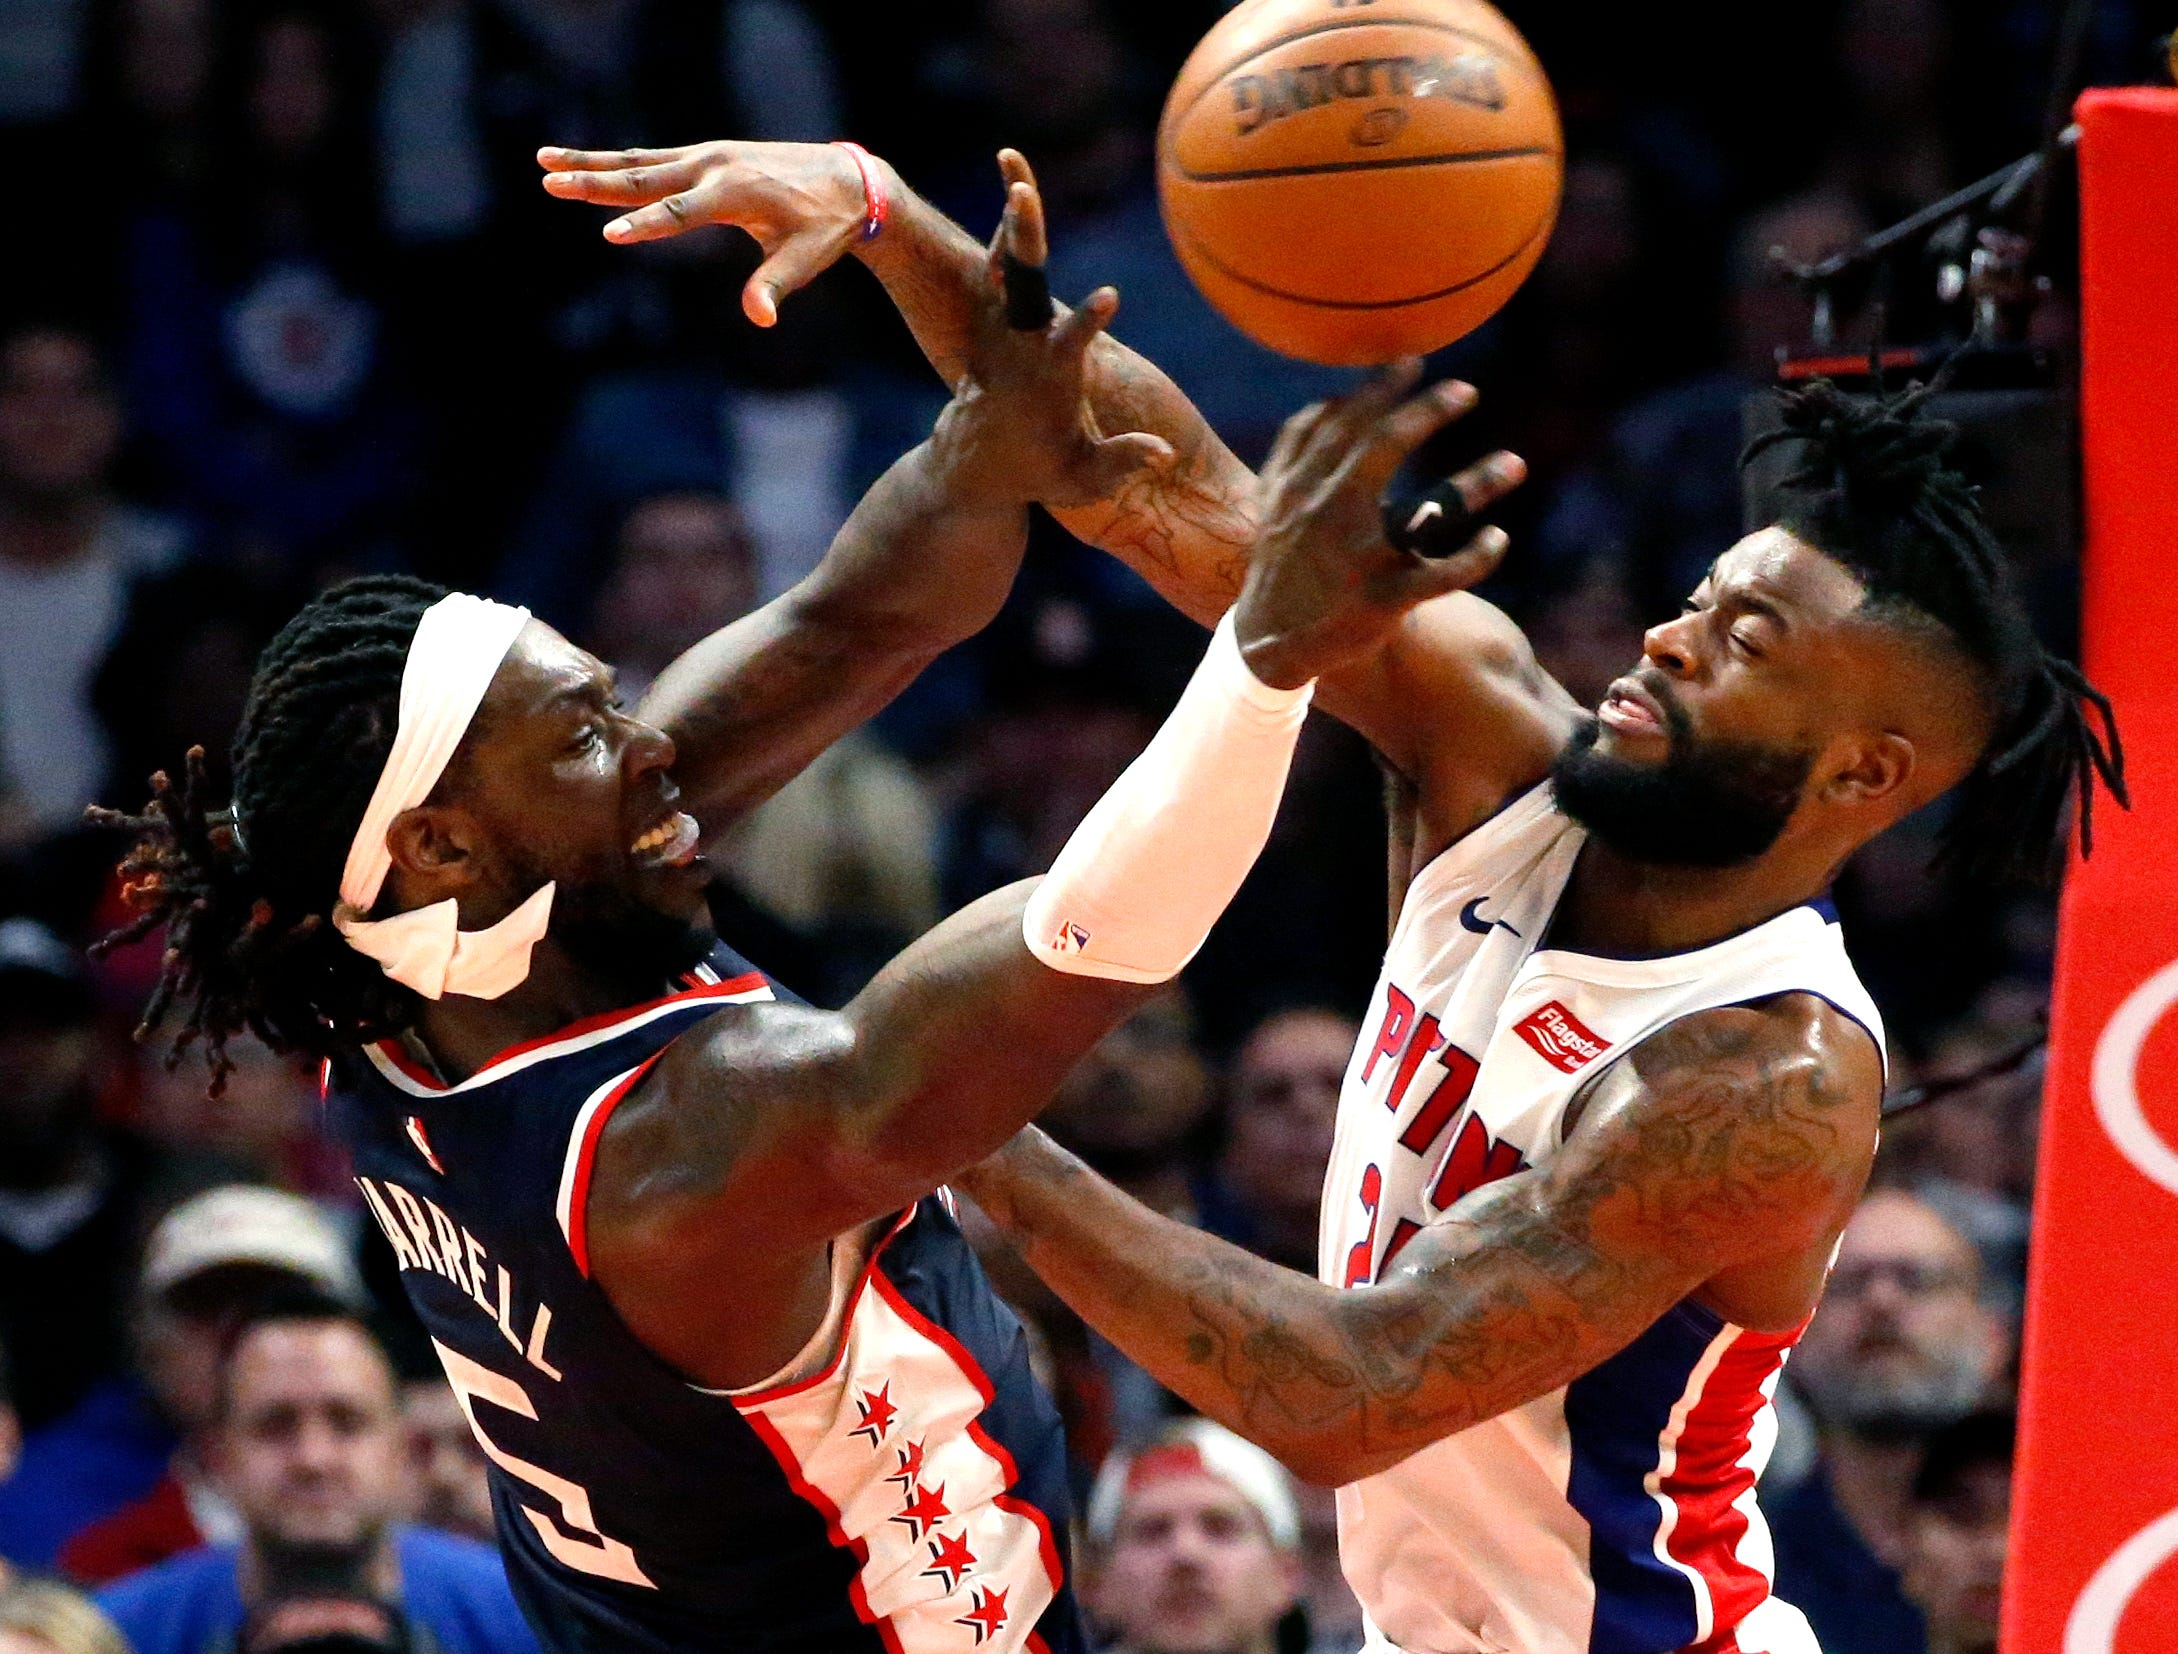 Los Angeles Clippers' Montrezl Harrell, left, passes the ball while defended by Detroit Pistons' Reggie Bullock during the second half.